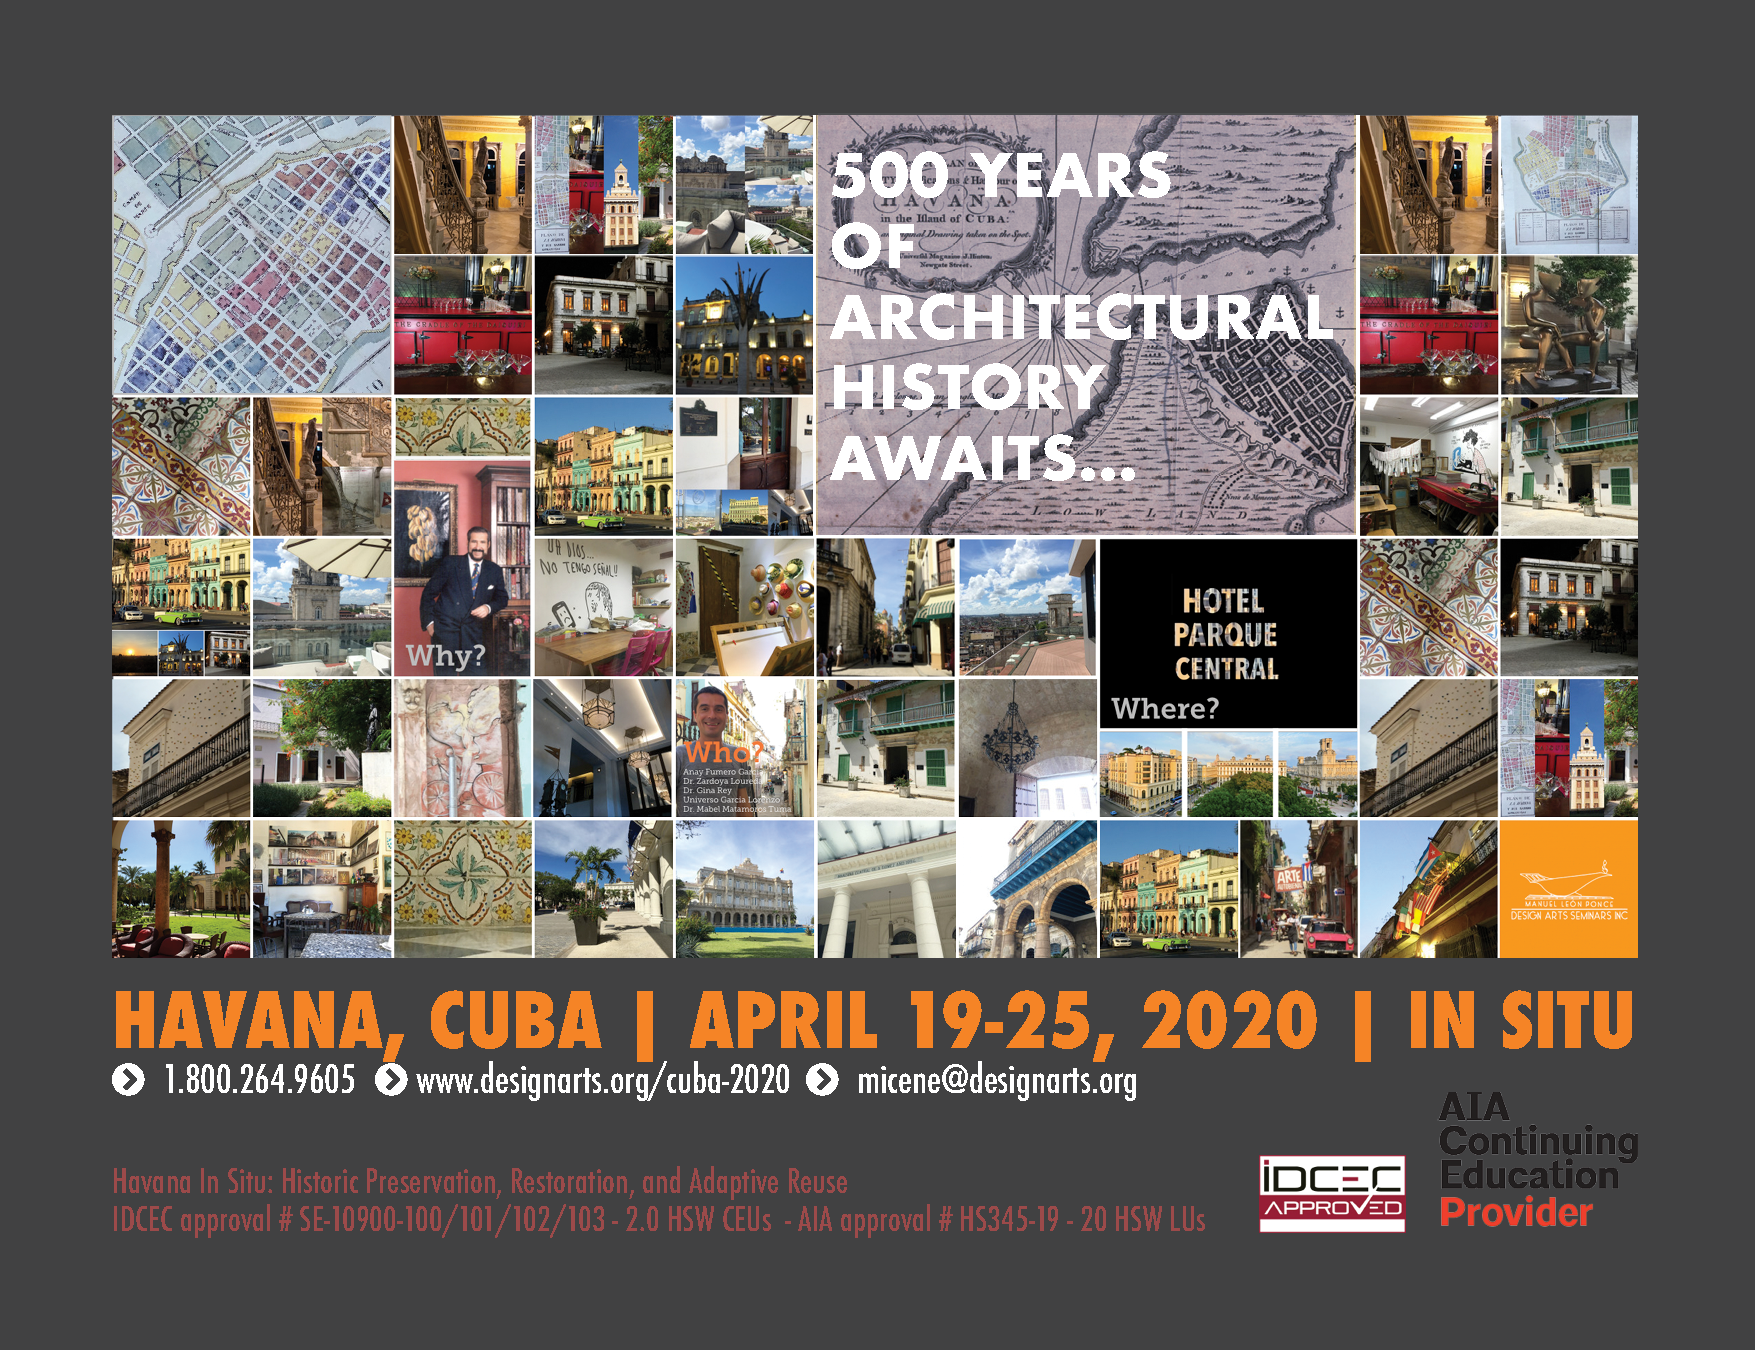 Cuba: 500 Years of Architectural History